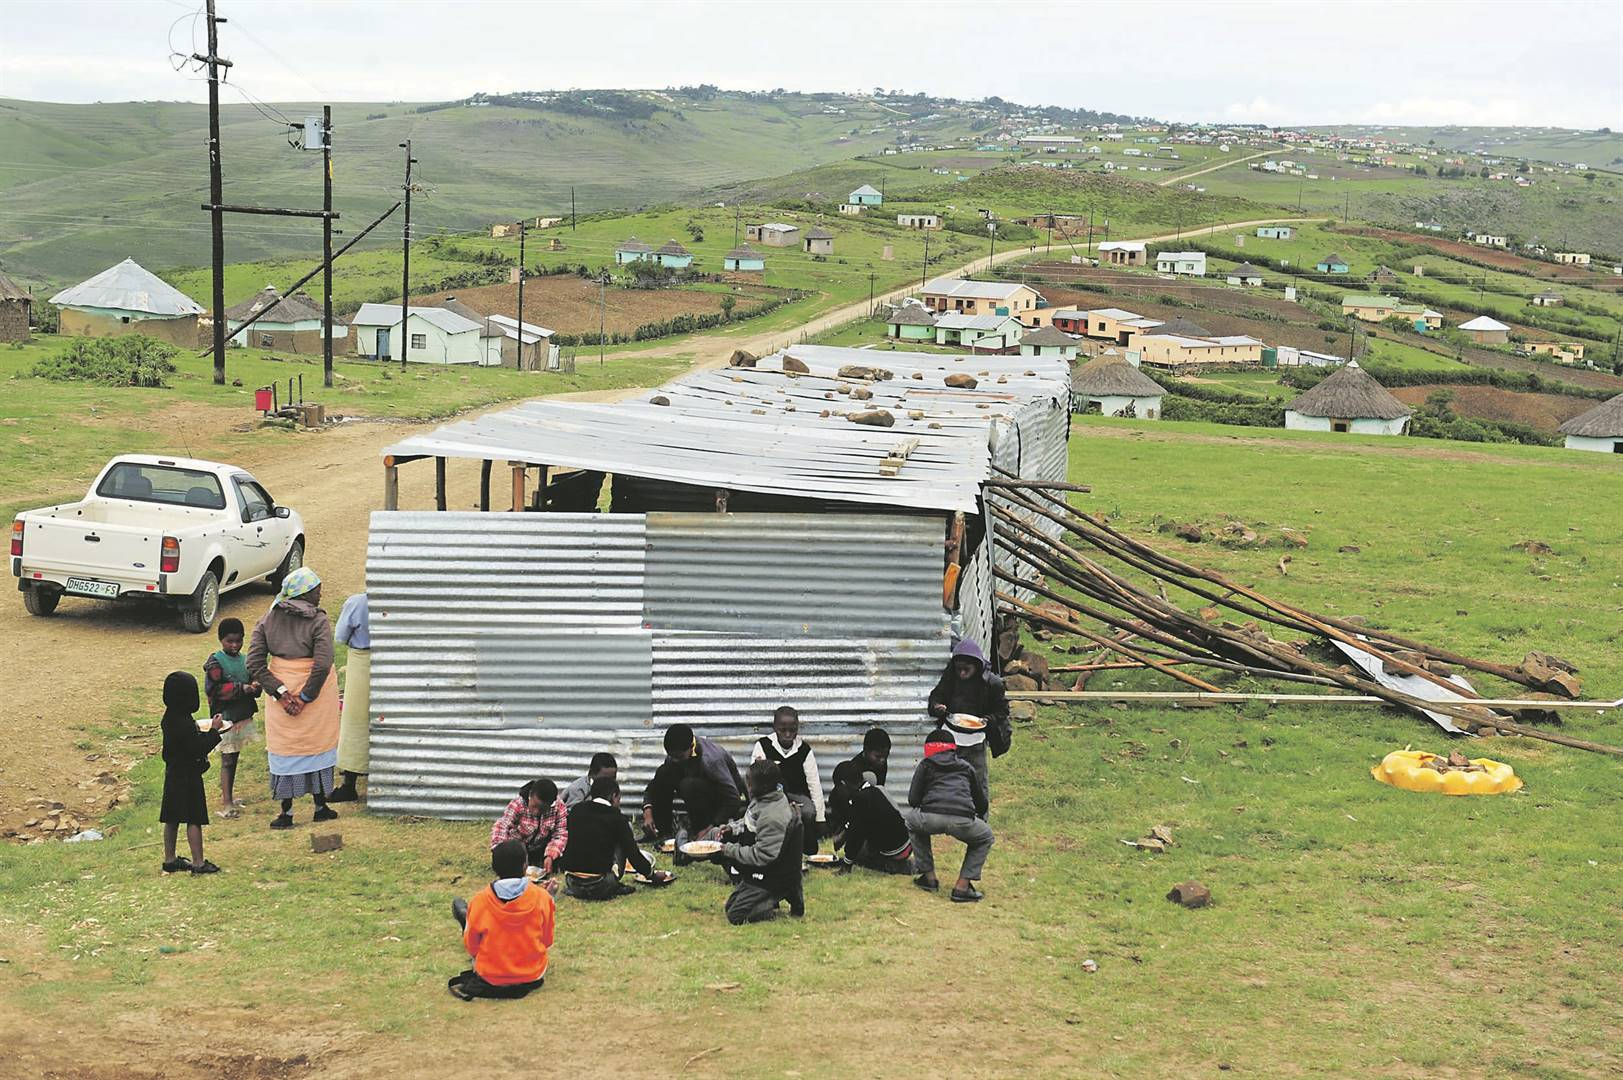 Government's plan to get rid of pit latrines and fix mud schools | City Press